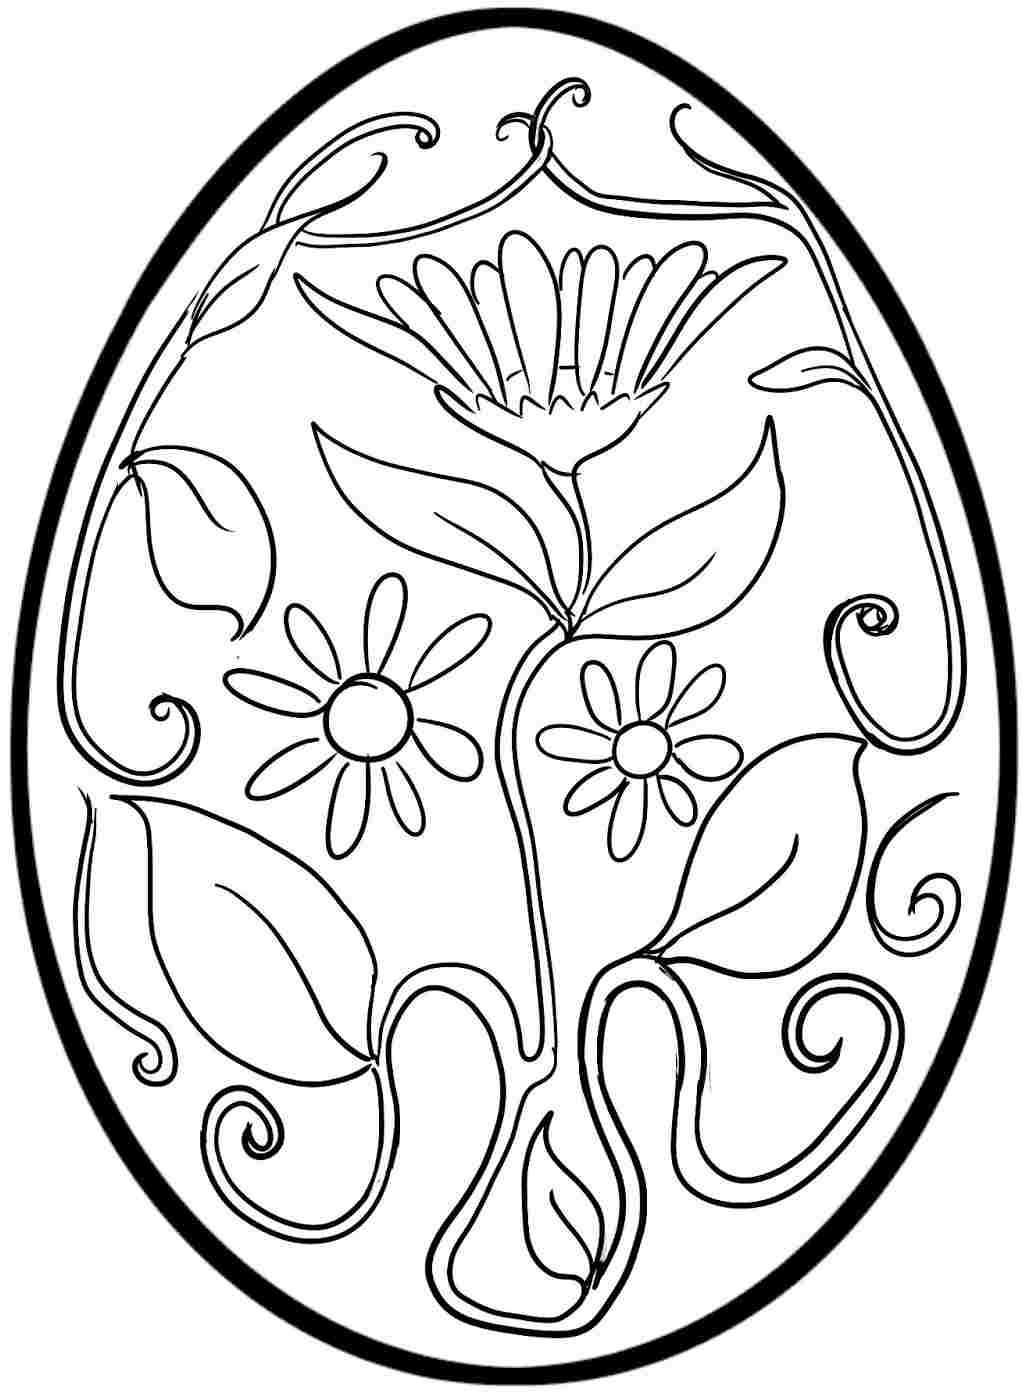 Online Easter Coloring Pages to Print | Free Coloring Sheets